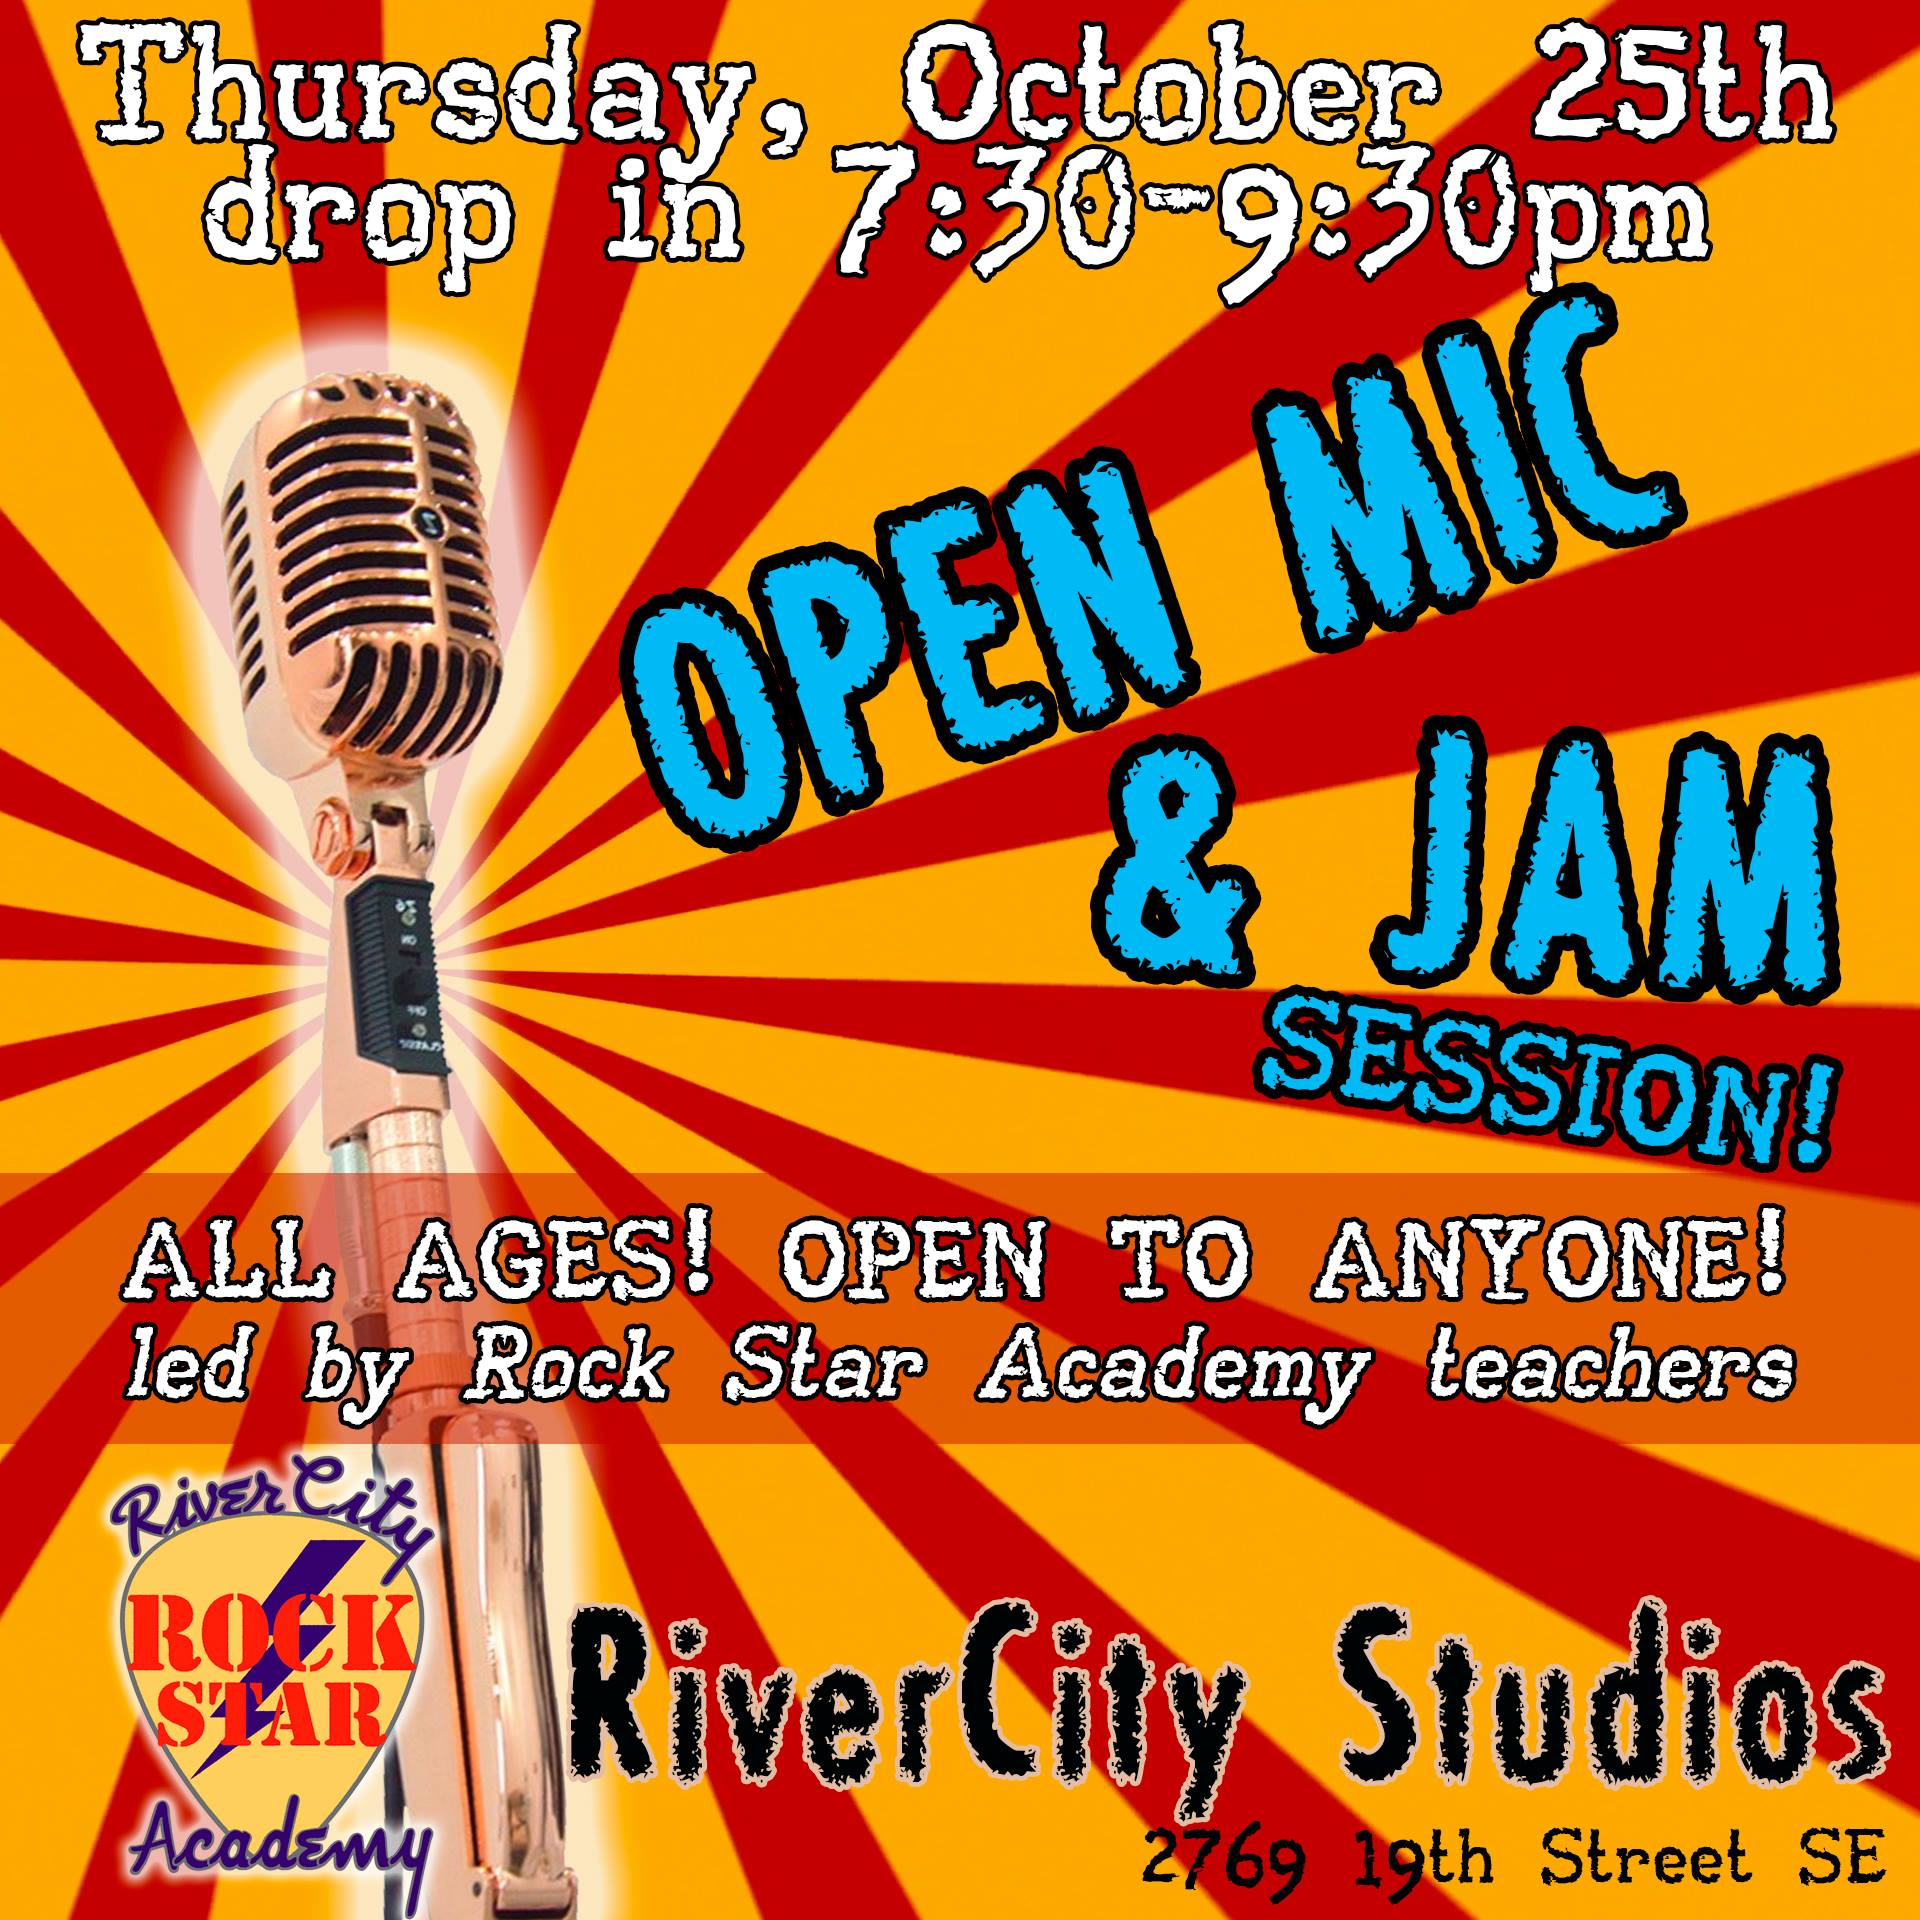 rivercity-open-mic-jam-session